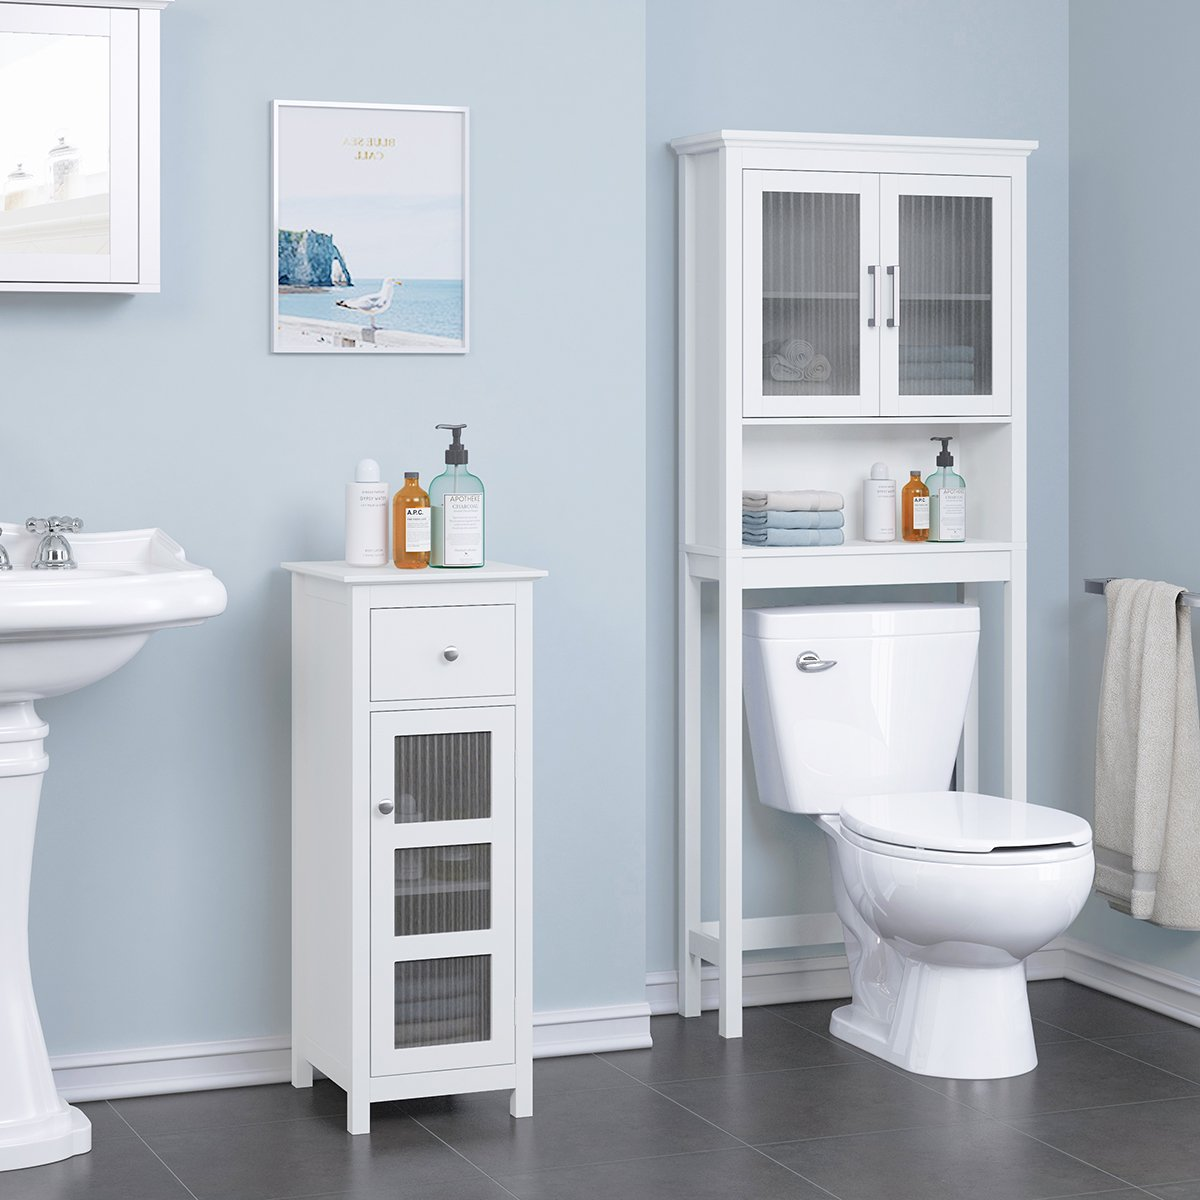 Amazon.com: SPIRICH Bathroom Storage Floor Cabinet, Bathroom Cabinet ...